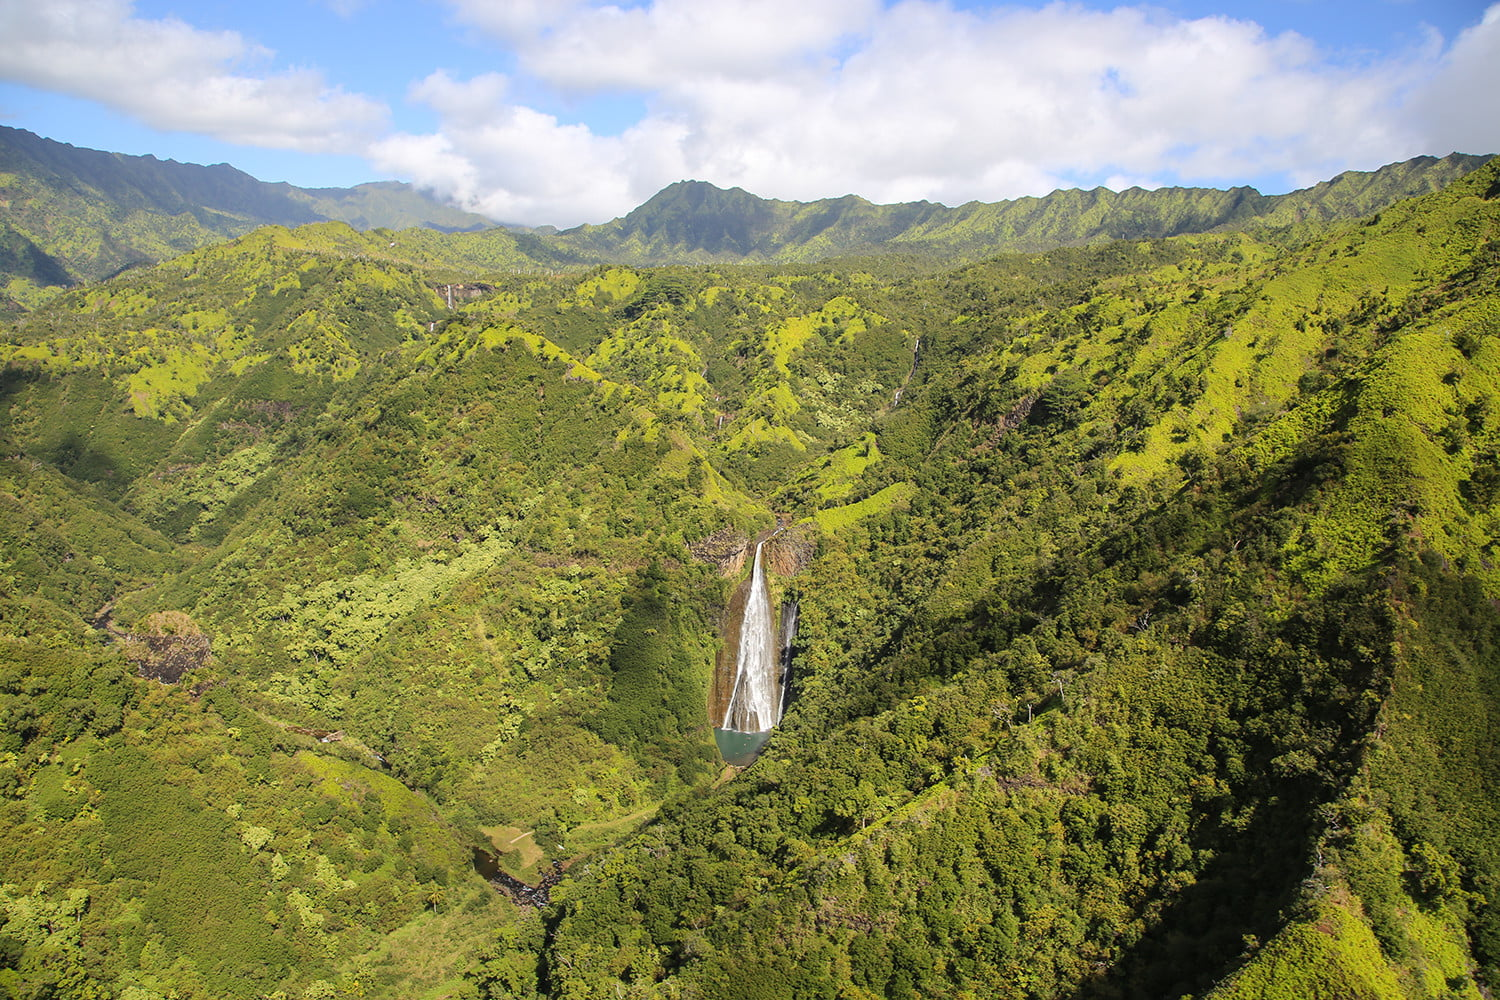 10 famous movie locations you can actually visit jurassic park kauai hawaii 3